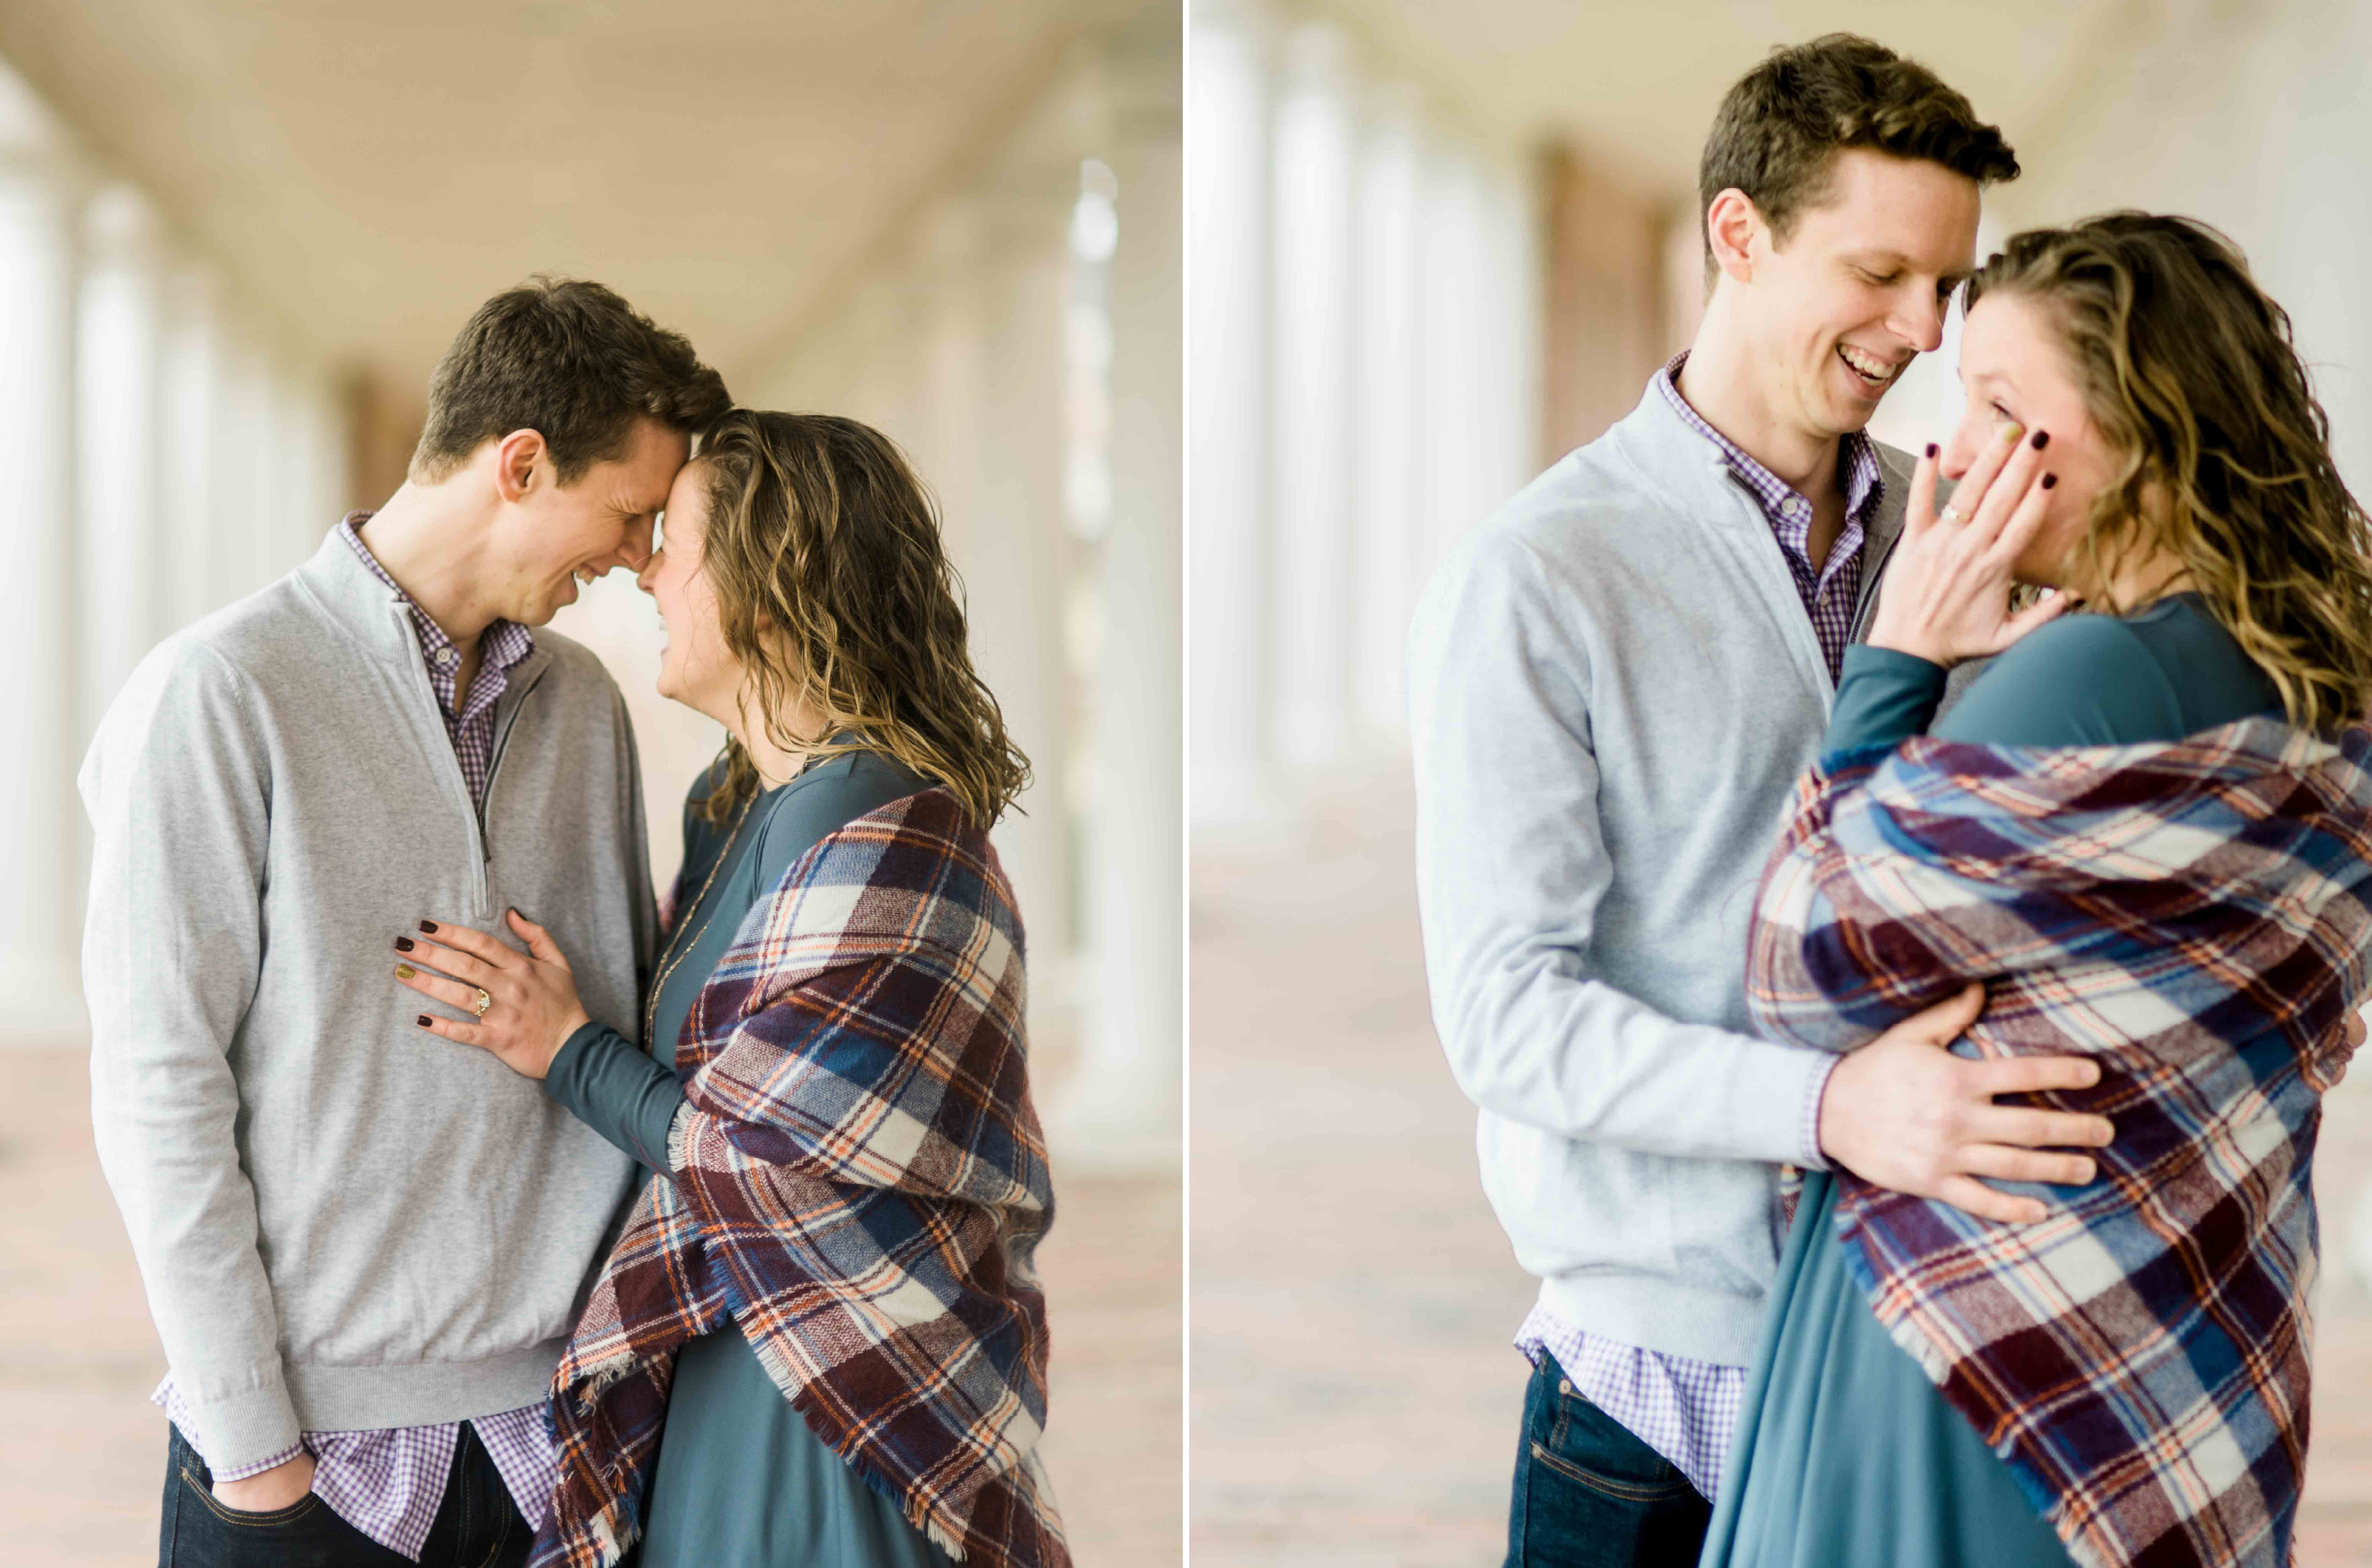 burlington engagement photographer greensboro nc proposal